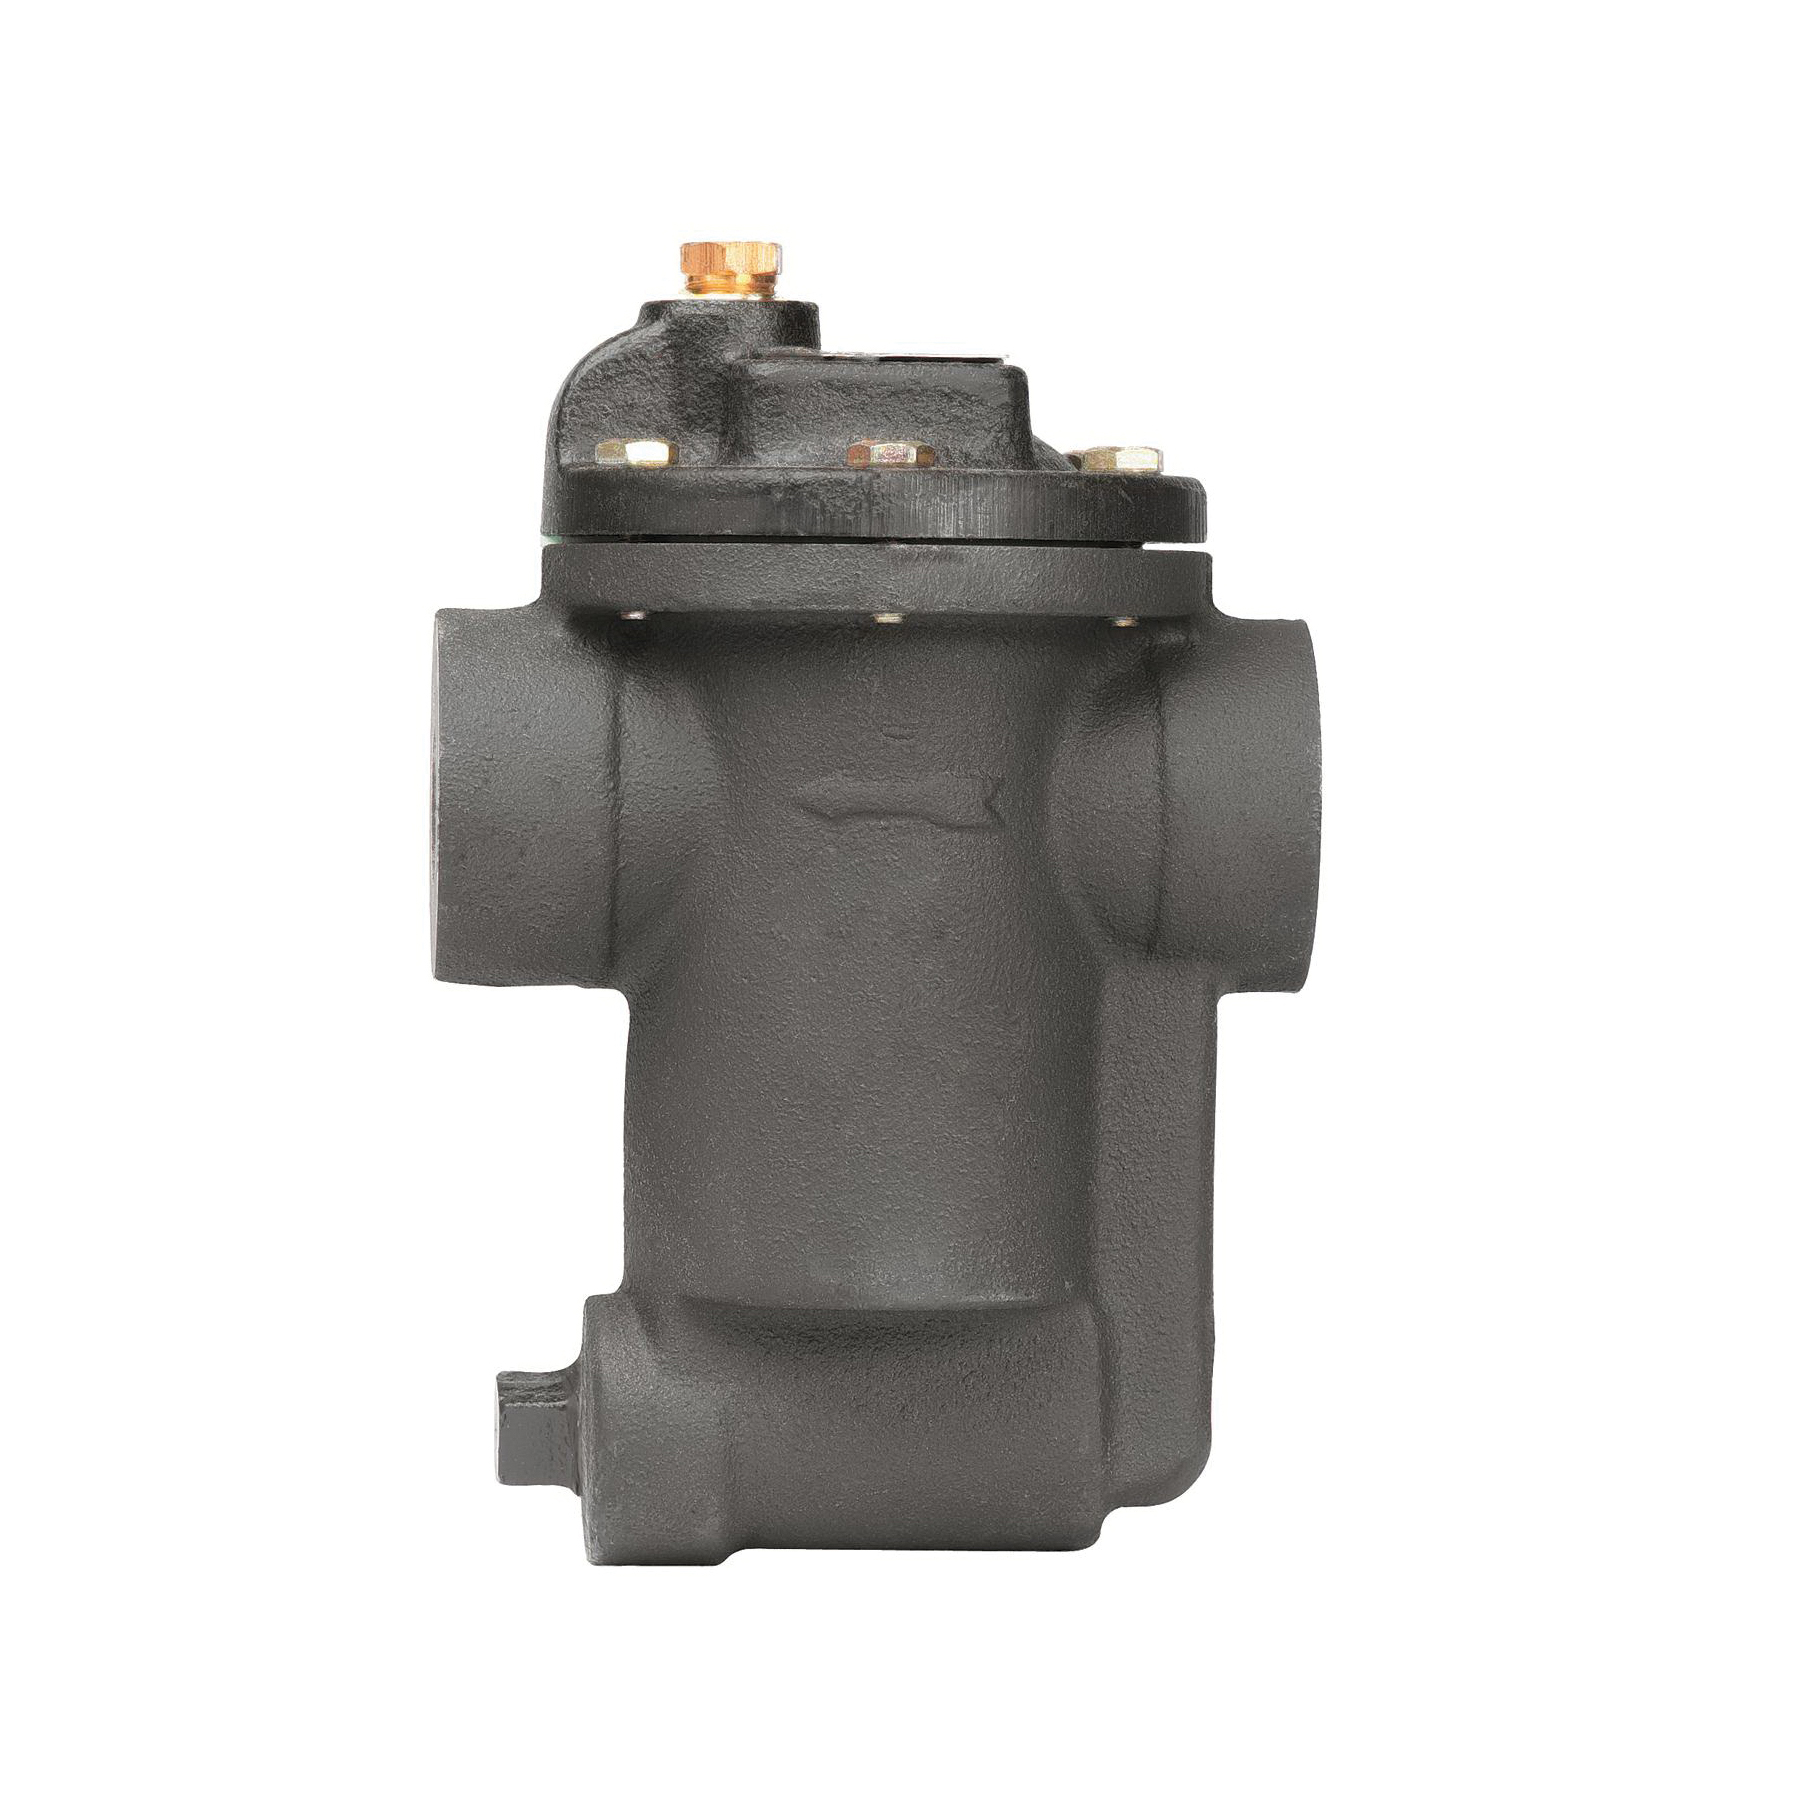 WATTS® 0039516 WIB, WIB-81-125 Inverted Bucket Steam Trap, 3/4 in, NPT, 406 deg F, 250 psi, Cast Iron, Domestic